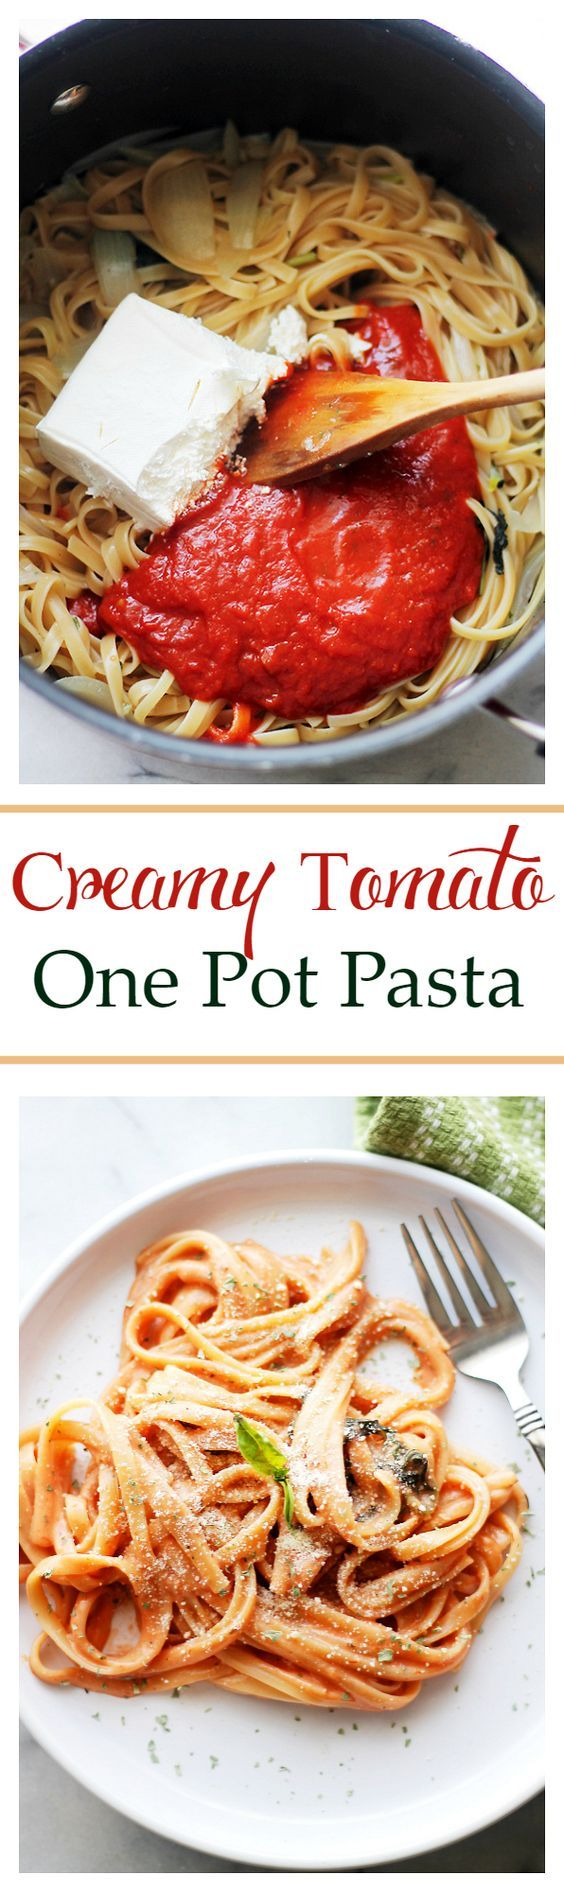 Creamy Tomato One Pot Pasta - The easiest and creamiest pasta without the cream…